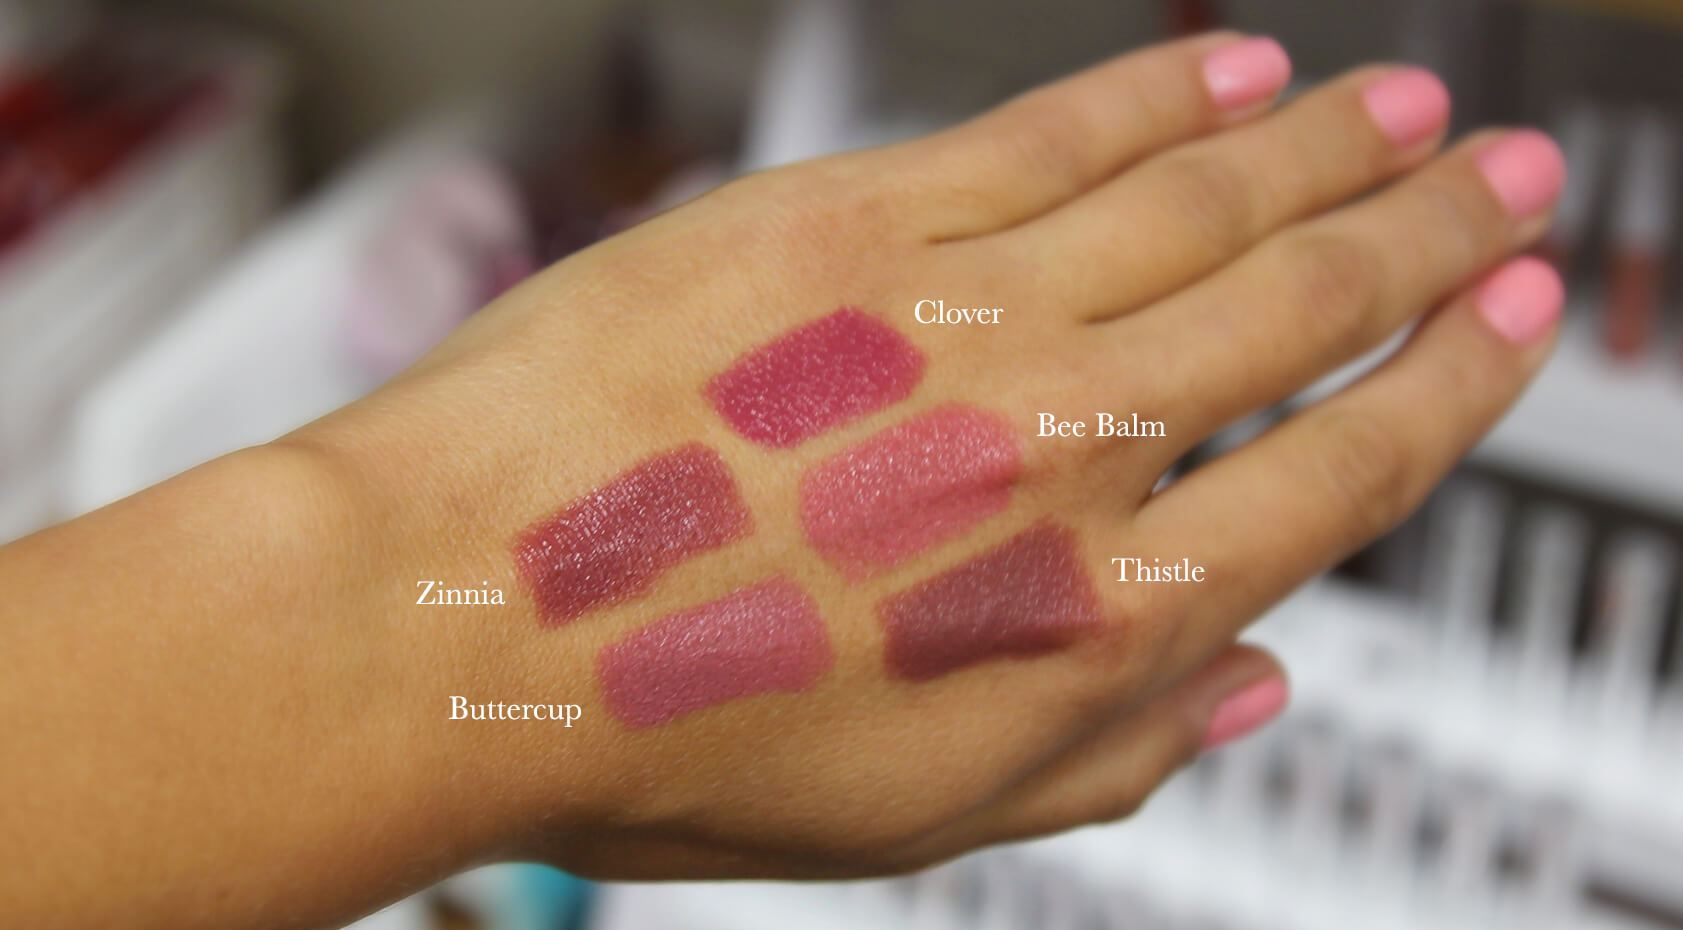 100% pure fruit pigmented lipstick swatches